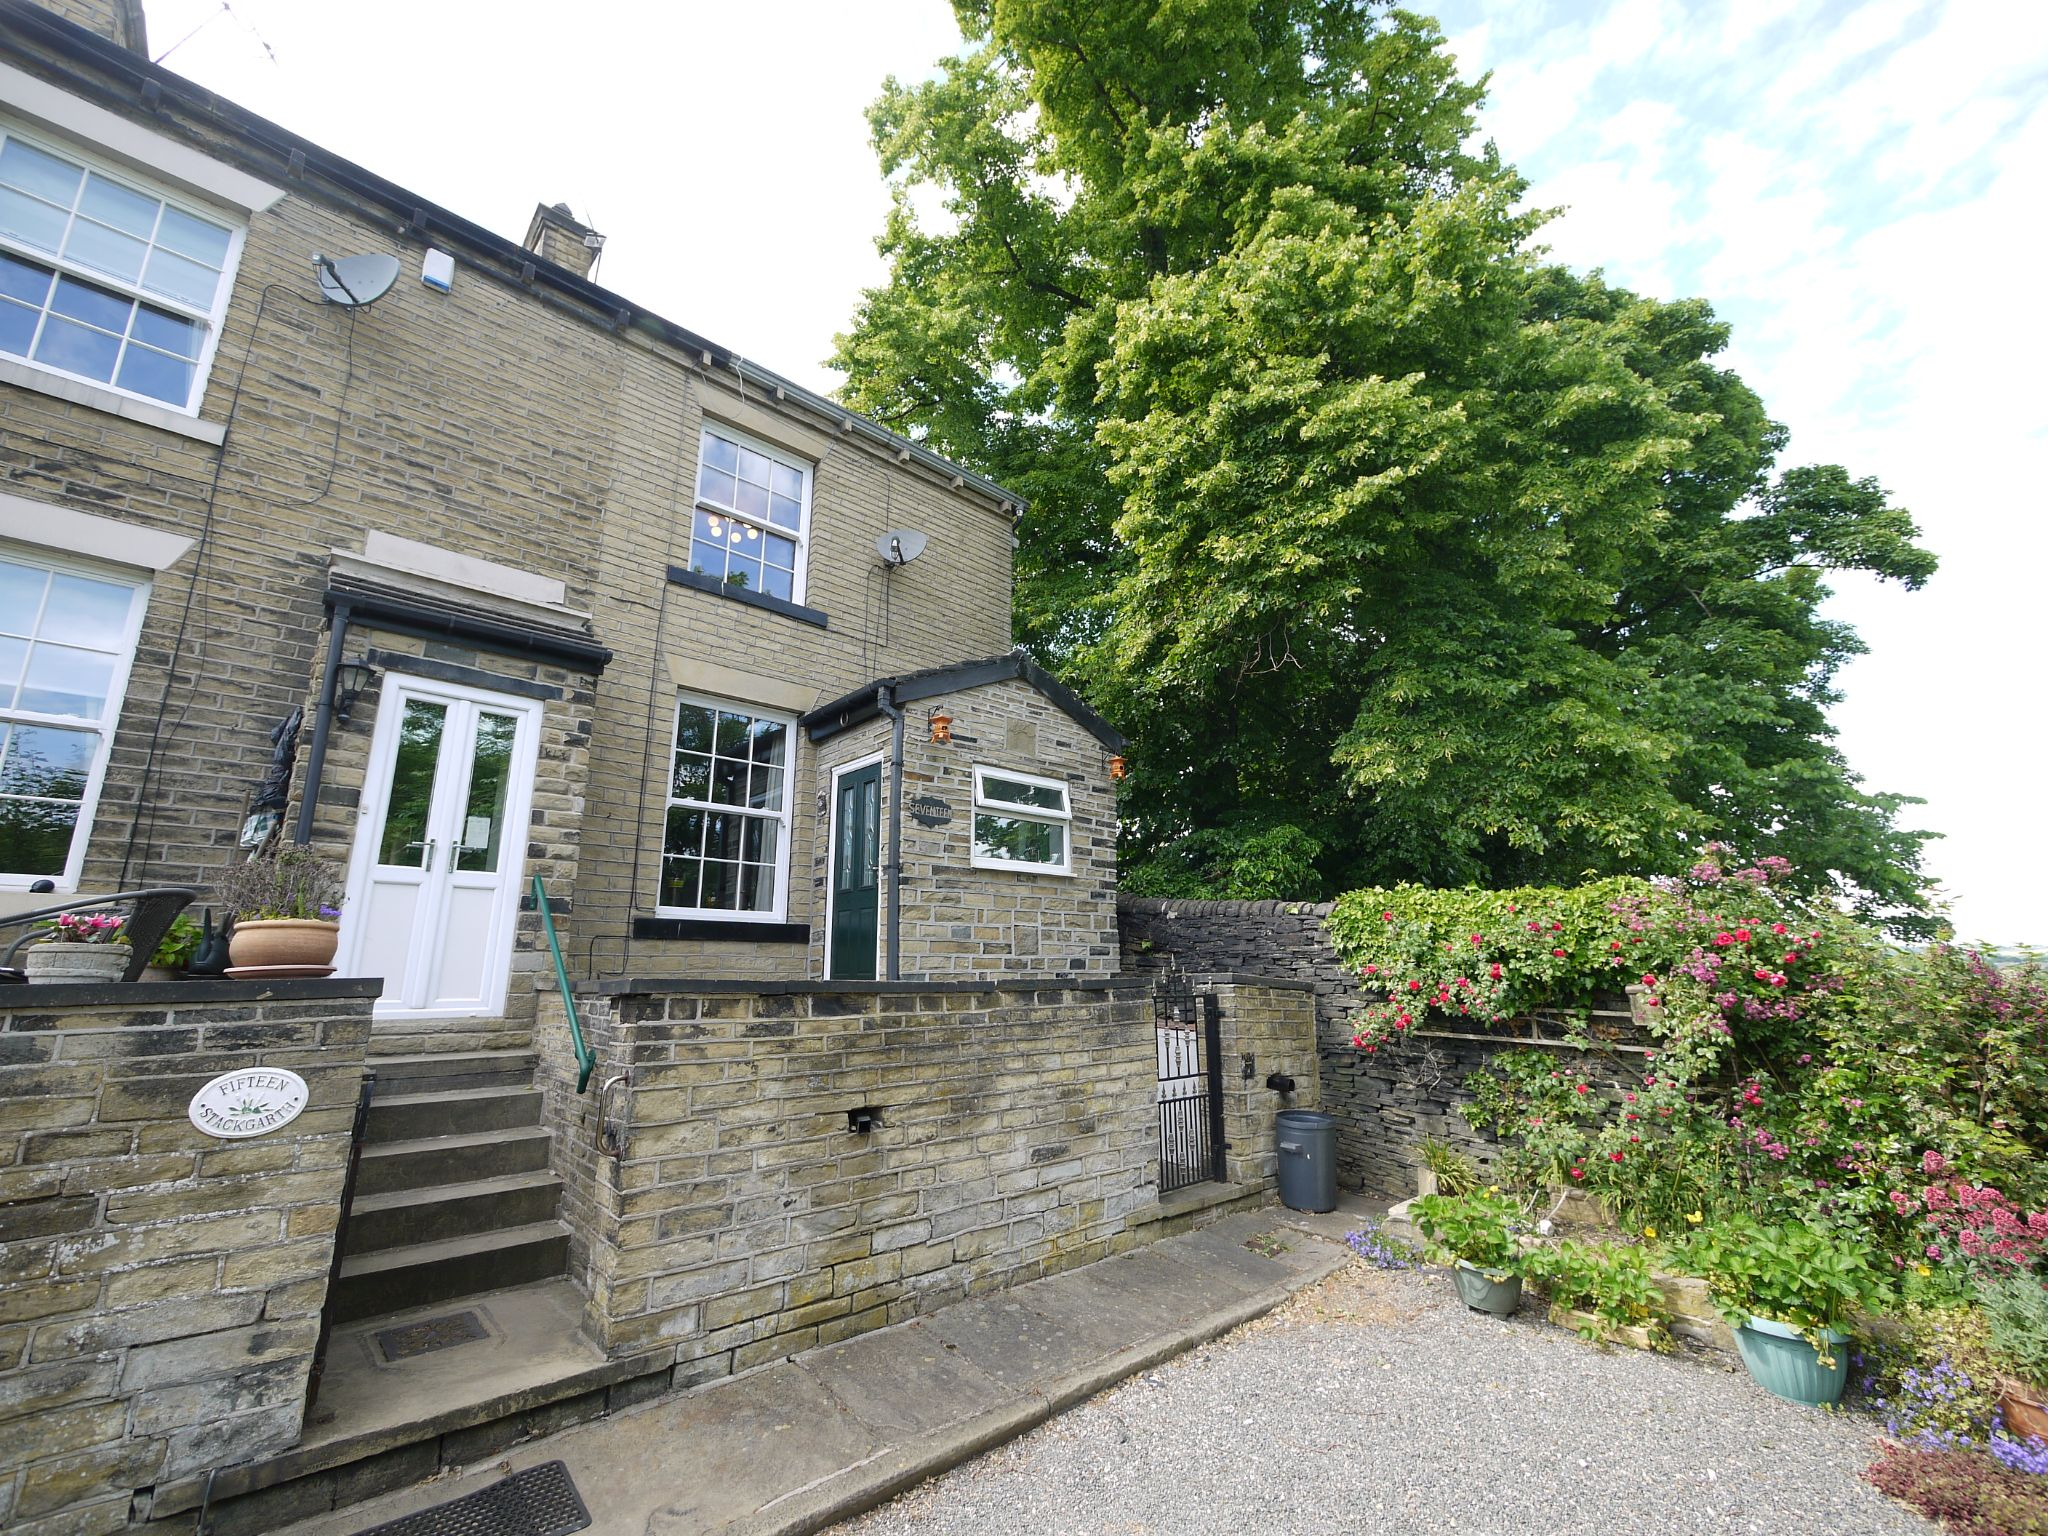 2 bedroom end terraced house For Sale in Brighouse - Main.